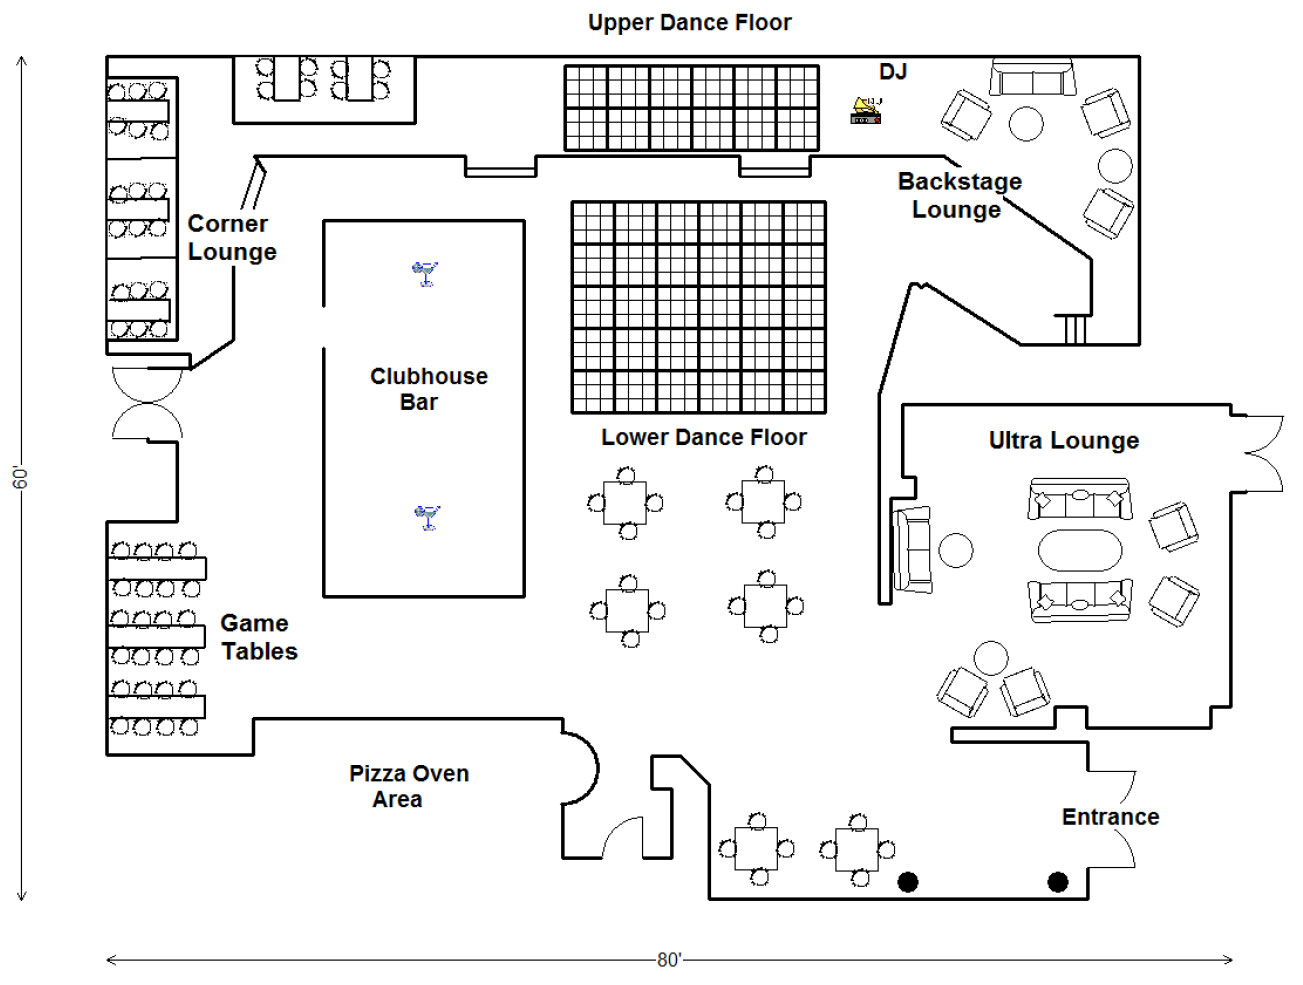 Floor Plan of Clubhouse Bistro, Foster city